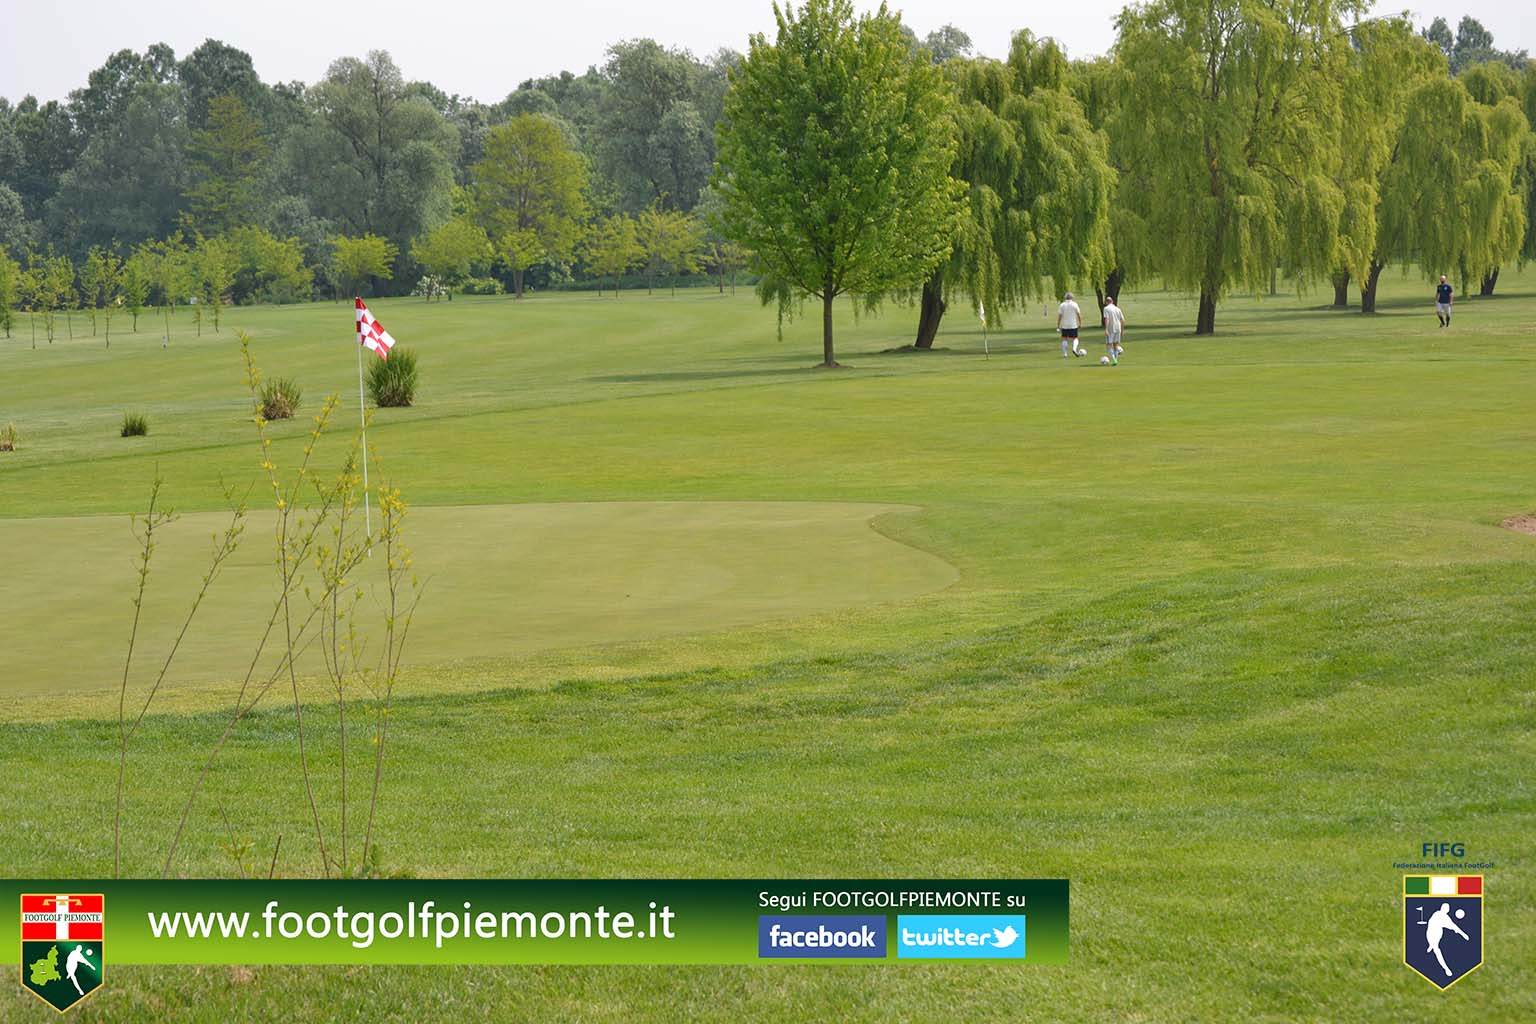 FOTO 9 Regions' Cup Footgolf Piemonte 2016 Golf Città di Asti (At) 30apr16-20